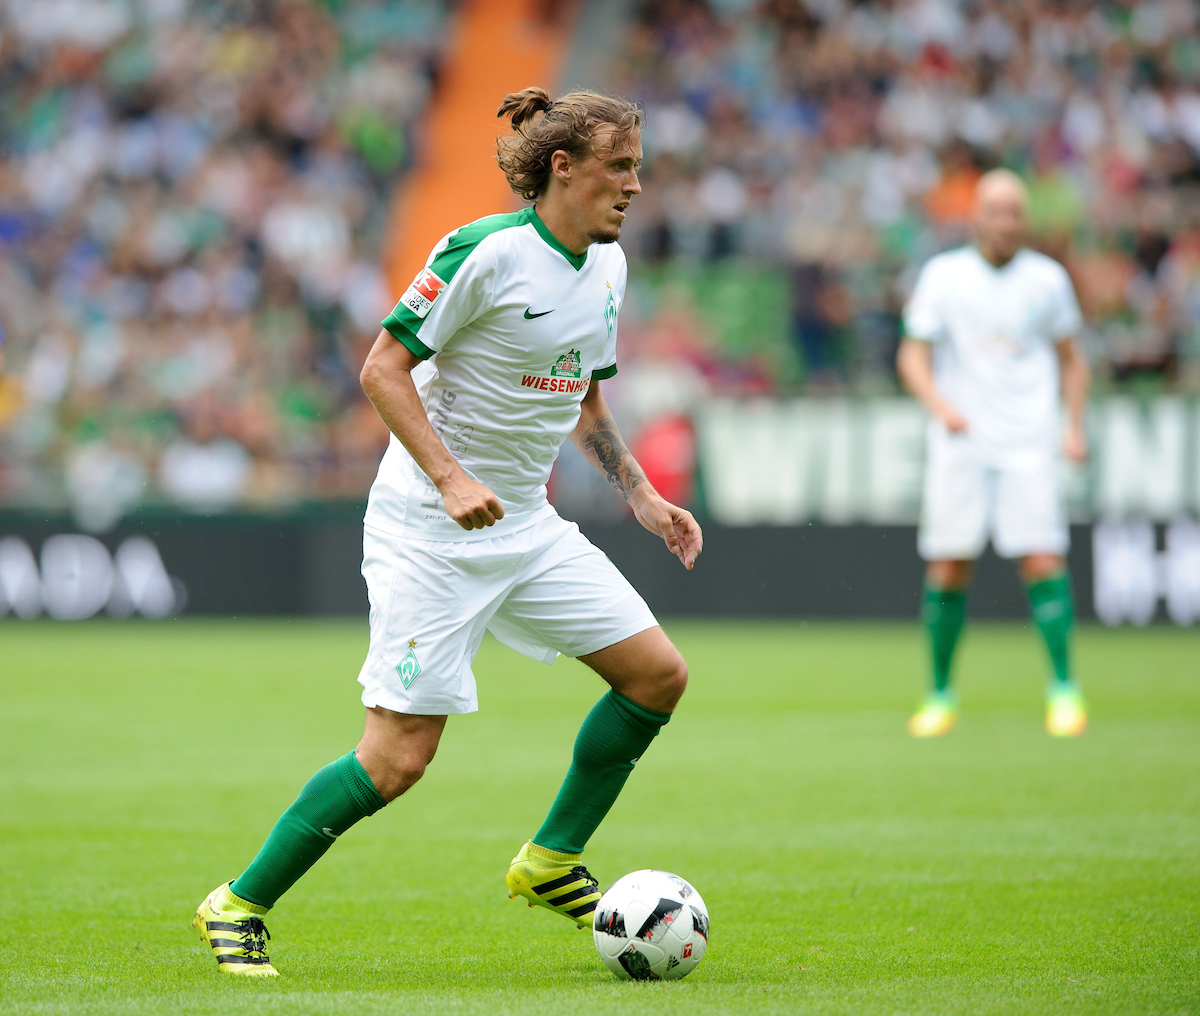 Max Kruse, el Messi del descenso en Alemania. Foto: Focus Images Ltd